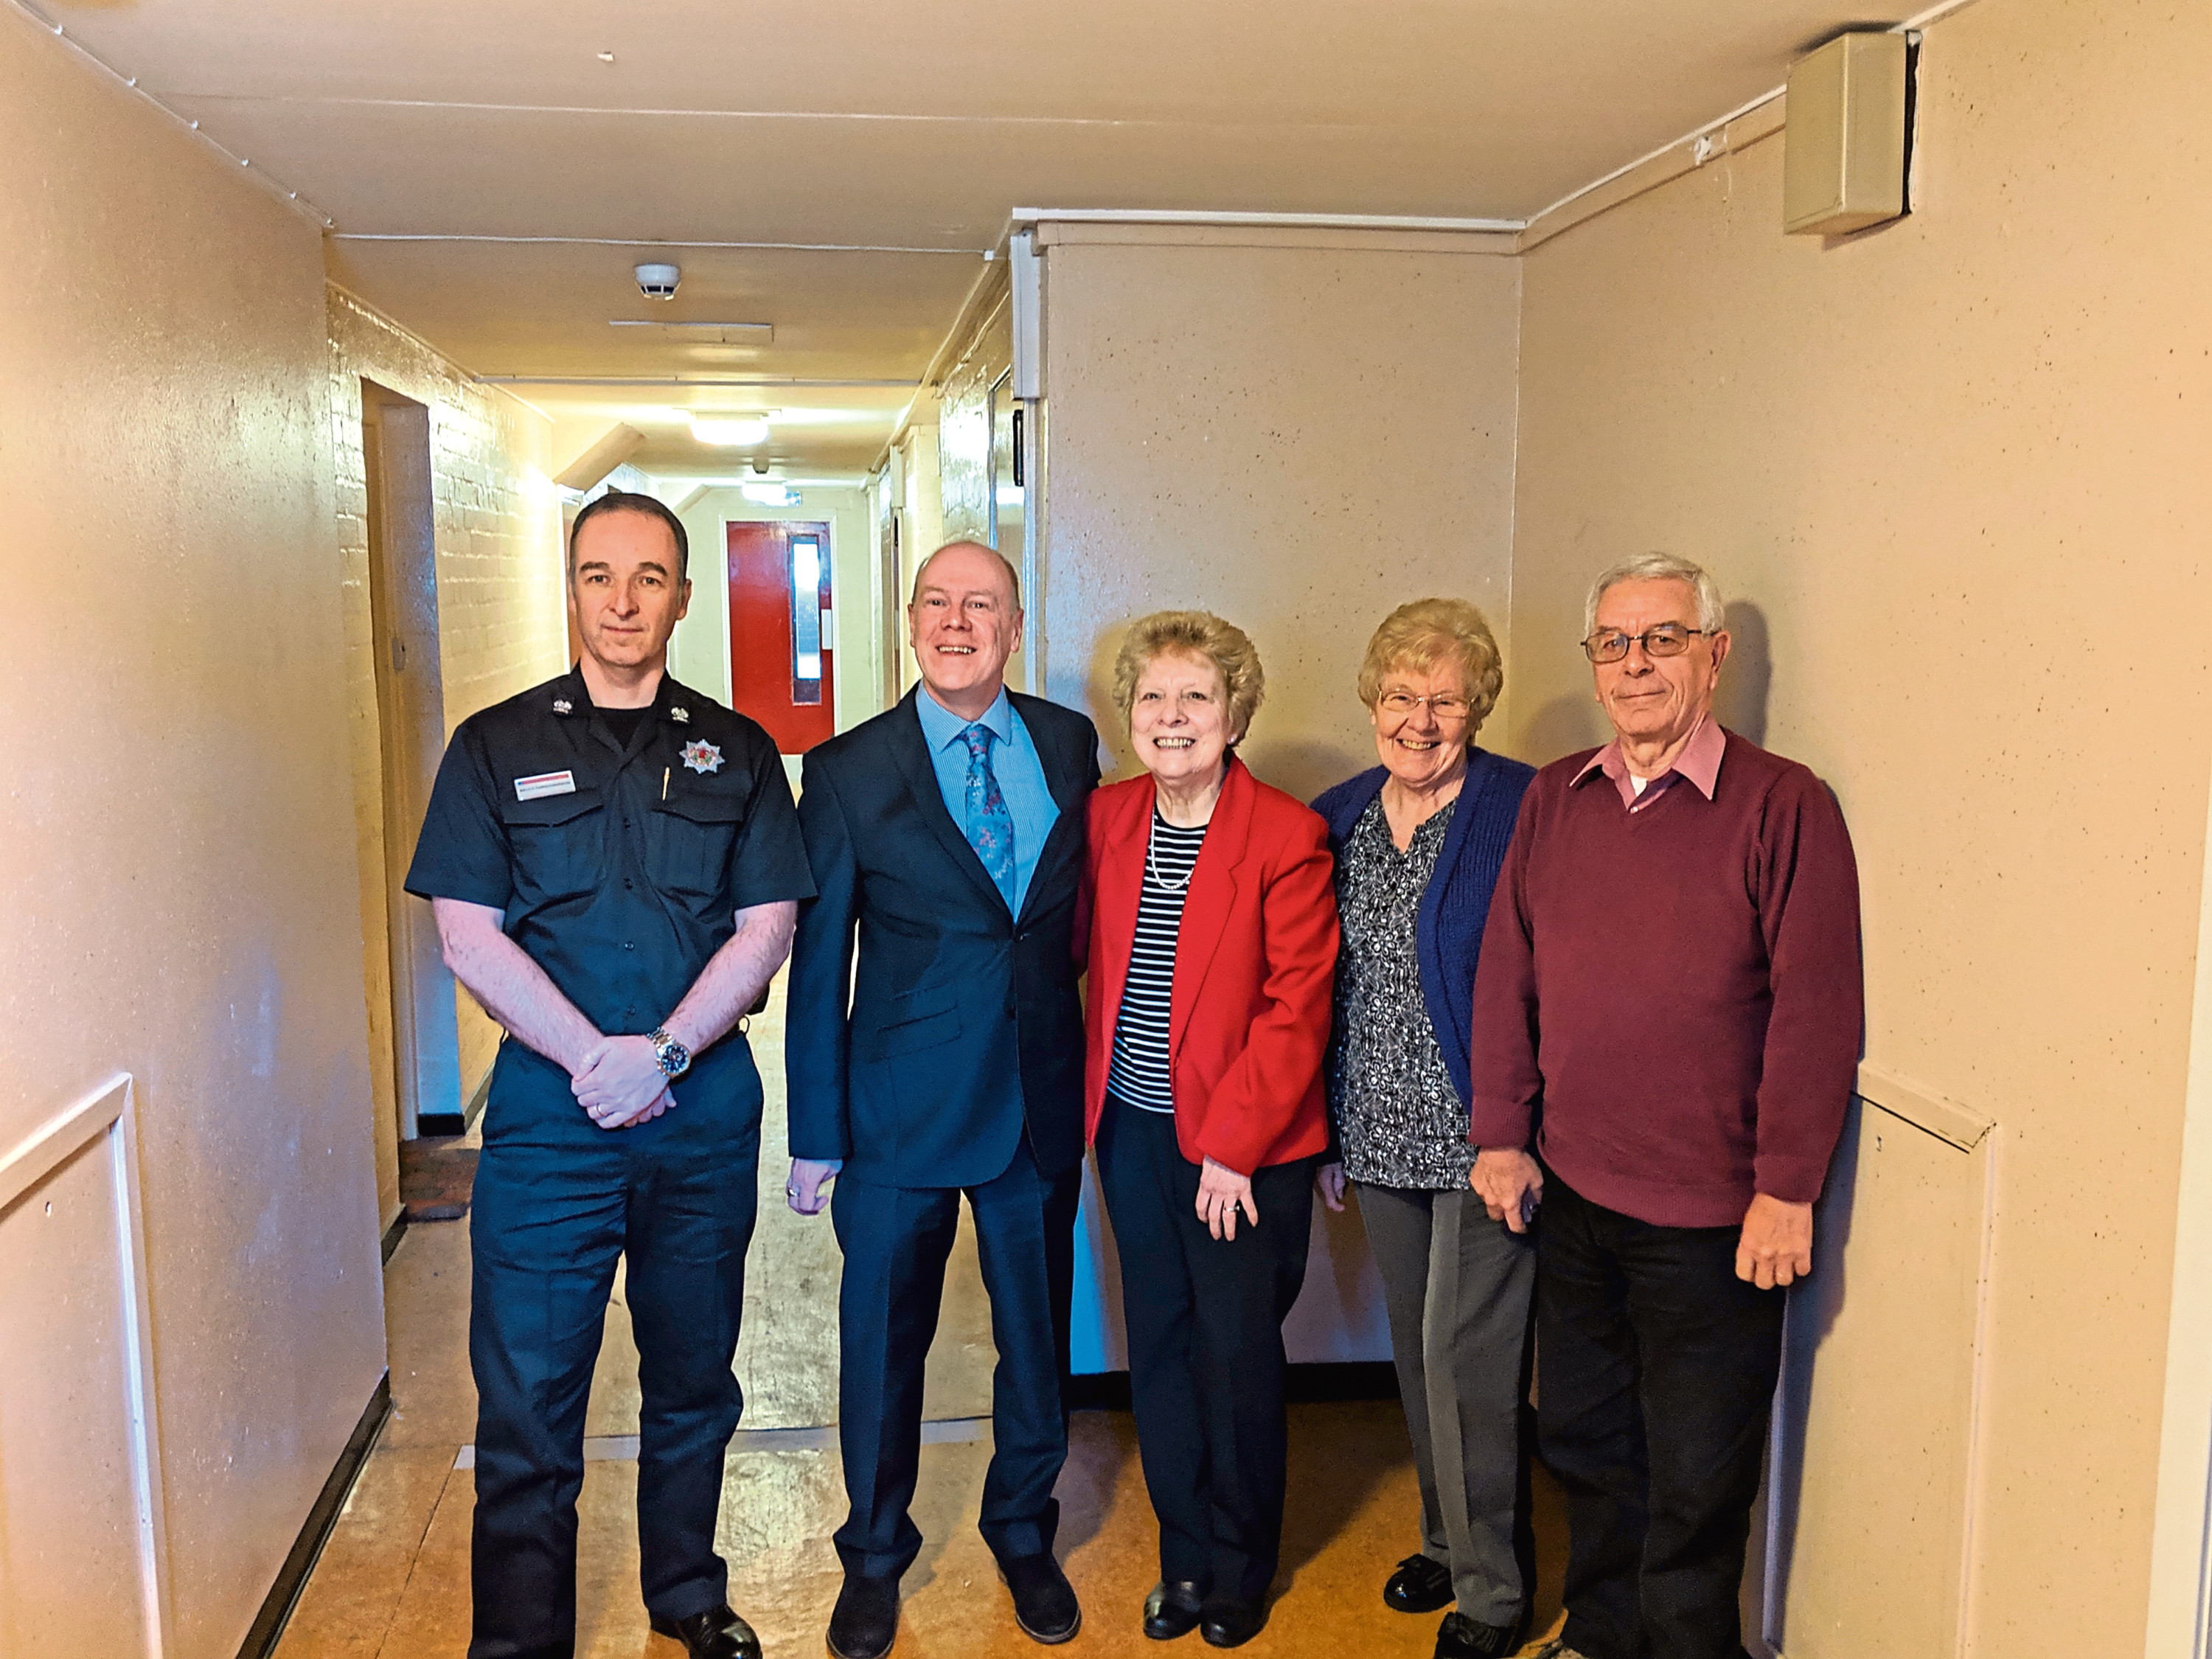 Scottish Fire and Rescue Service's senior officer Bruce Farquharson with MSP Kevin Stewart, Thistle Court residents Leonora Montgomery, Mary McMann and John McMann